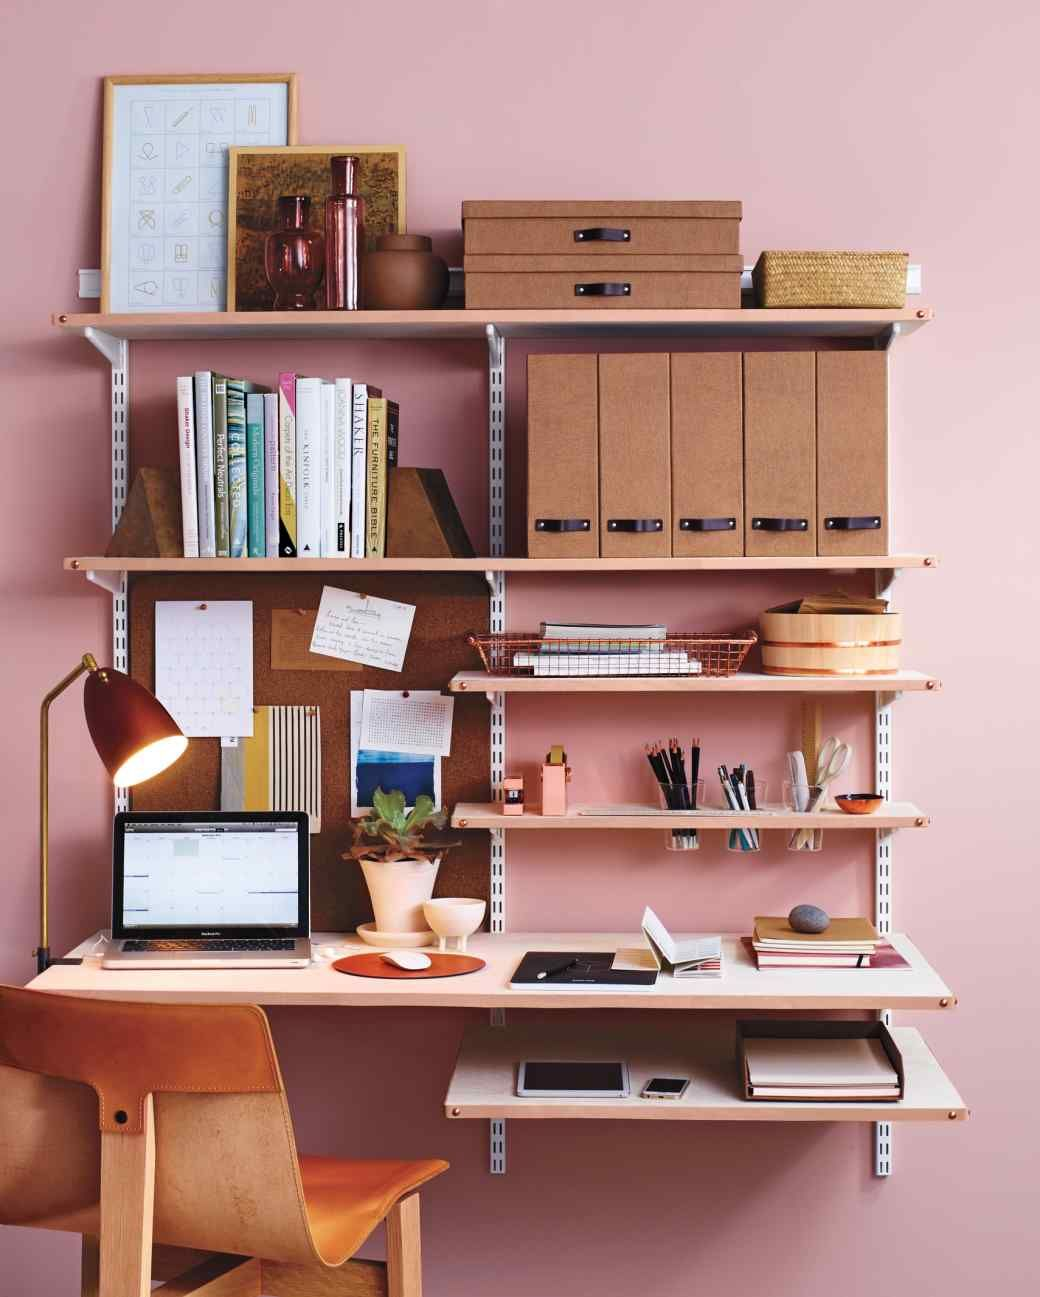 DIY Leather Shelf Edging for a Chic Home Office Shelves